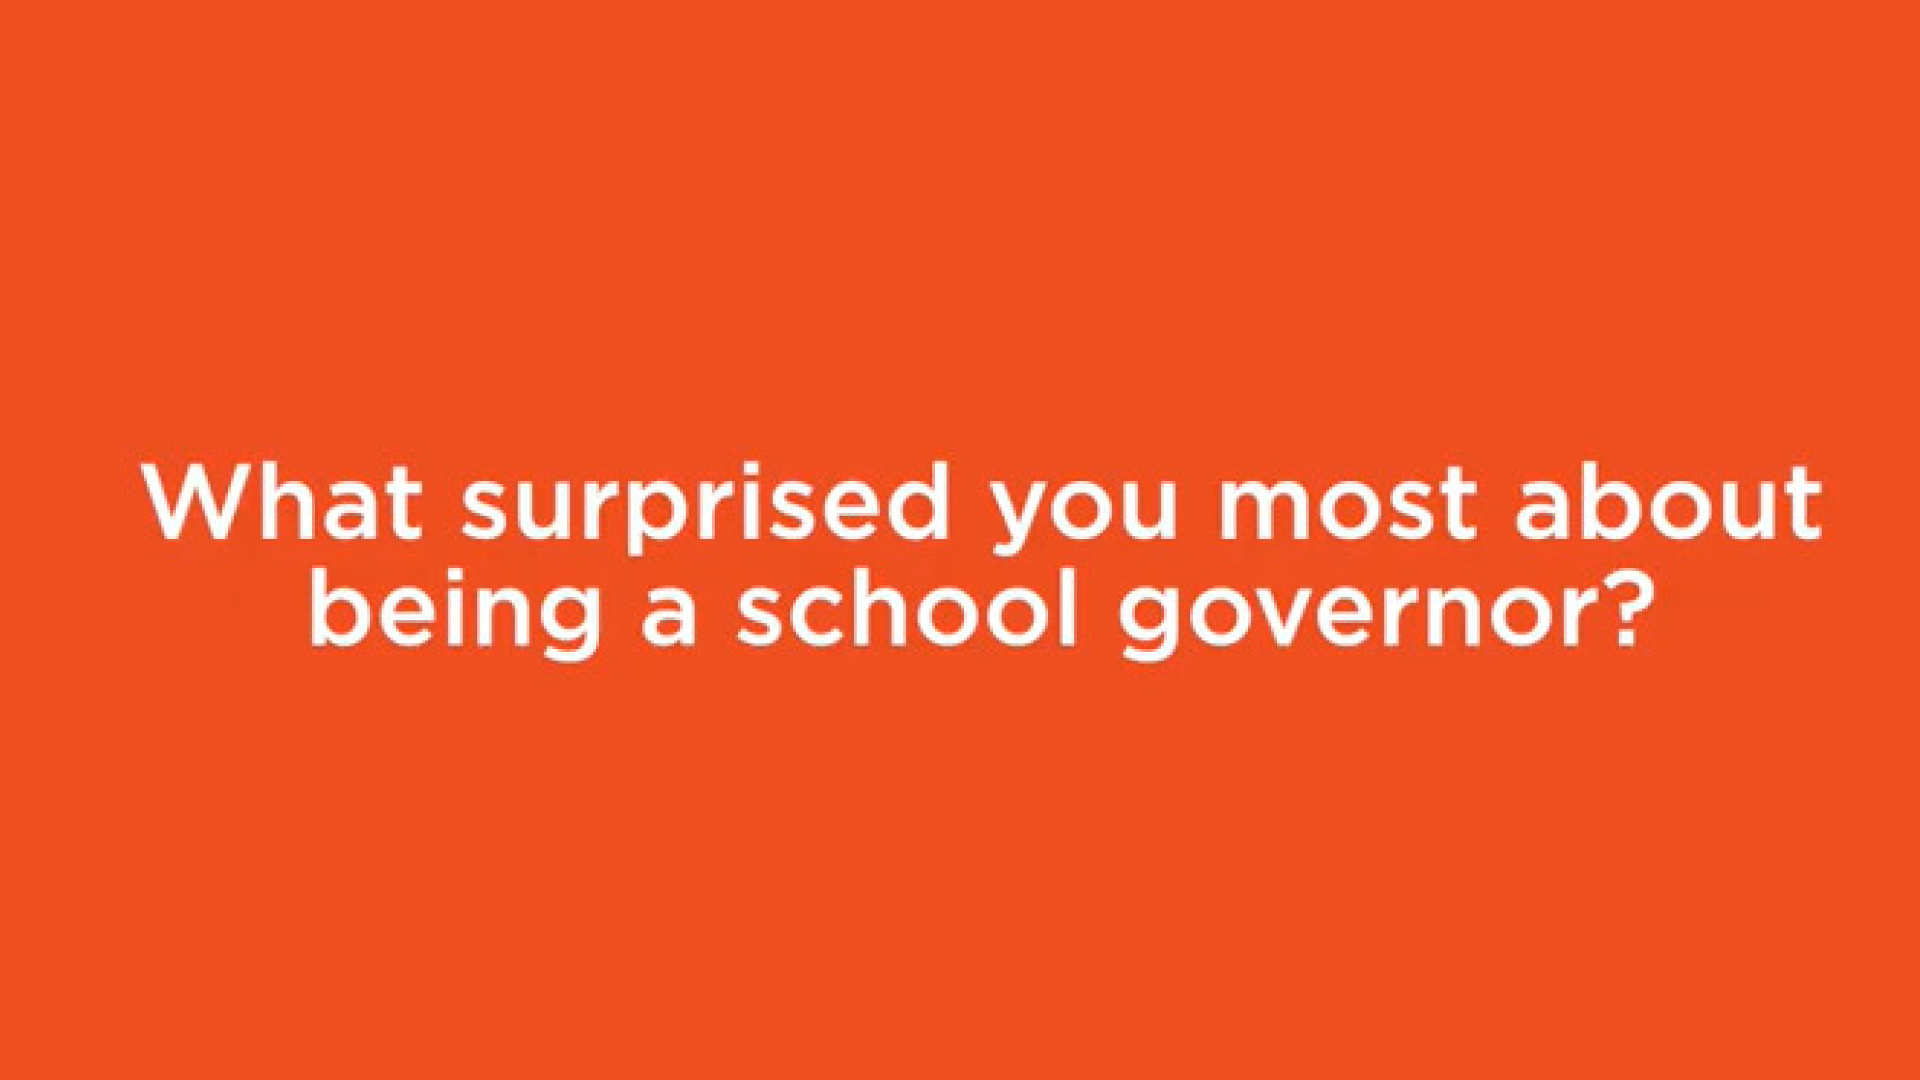 Waht surprised you most about being a School Governor